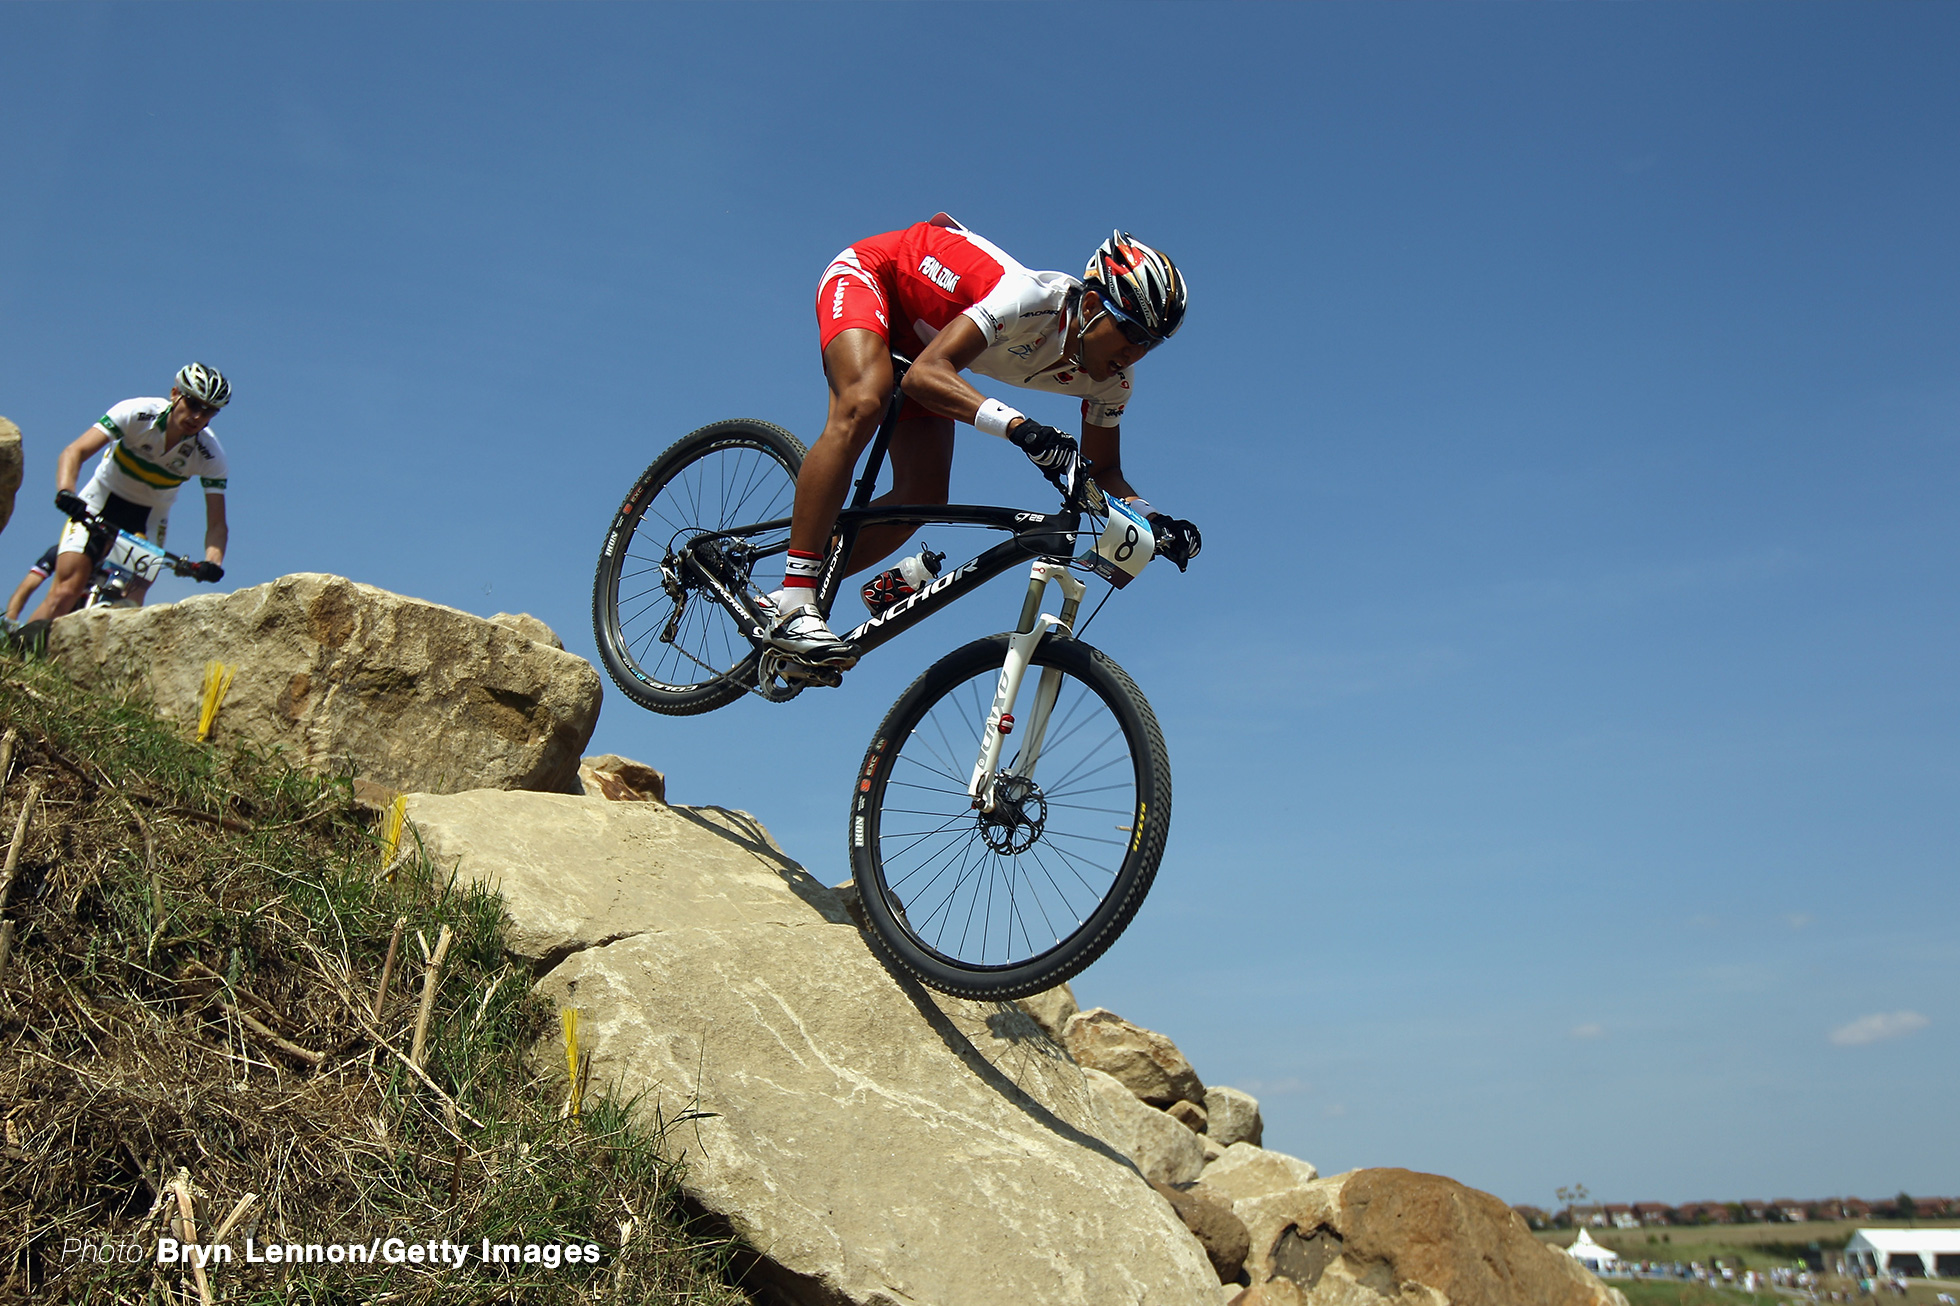 HADLEIGH, ENGLAND - JULY 31: Kohei Yamamoto of Japan in action in the LOCOG Men's Mountain Bike Test Event for London 2012 at Hadleigh Farm on July 31, 2011 in Hadleigh, England. (Photo by Bryn Lennon/Getty Images)